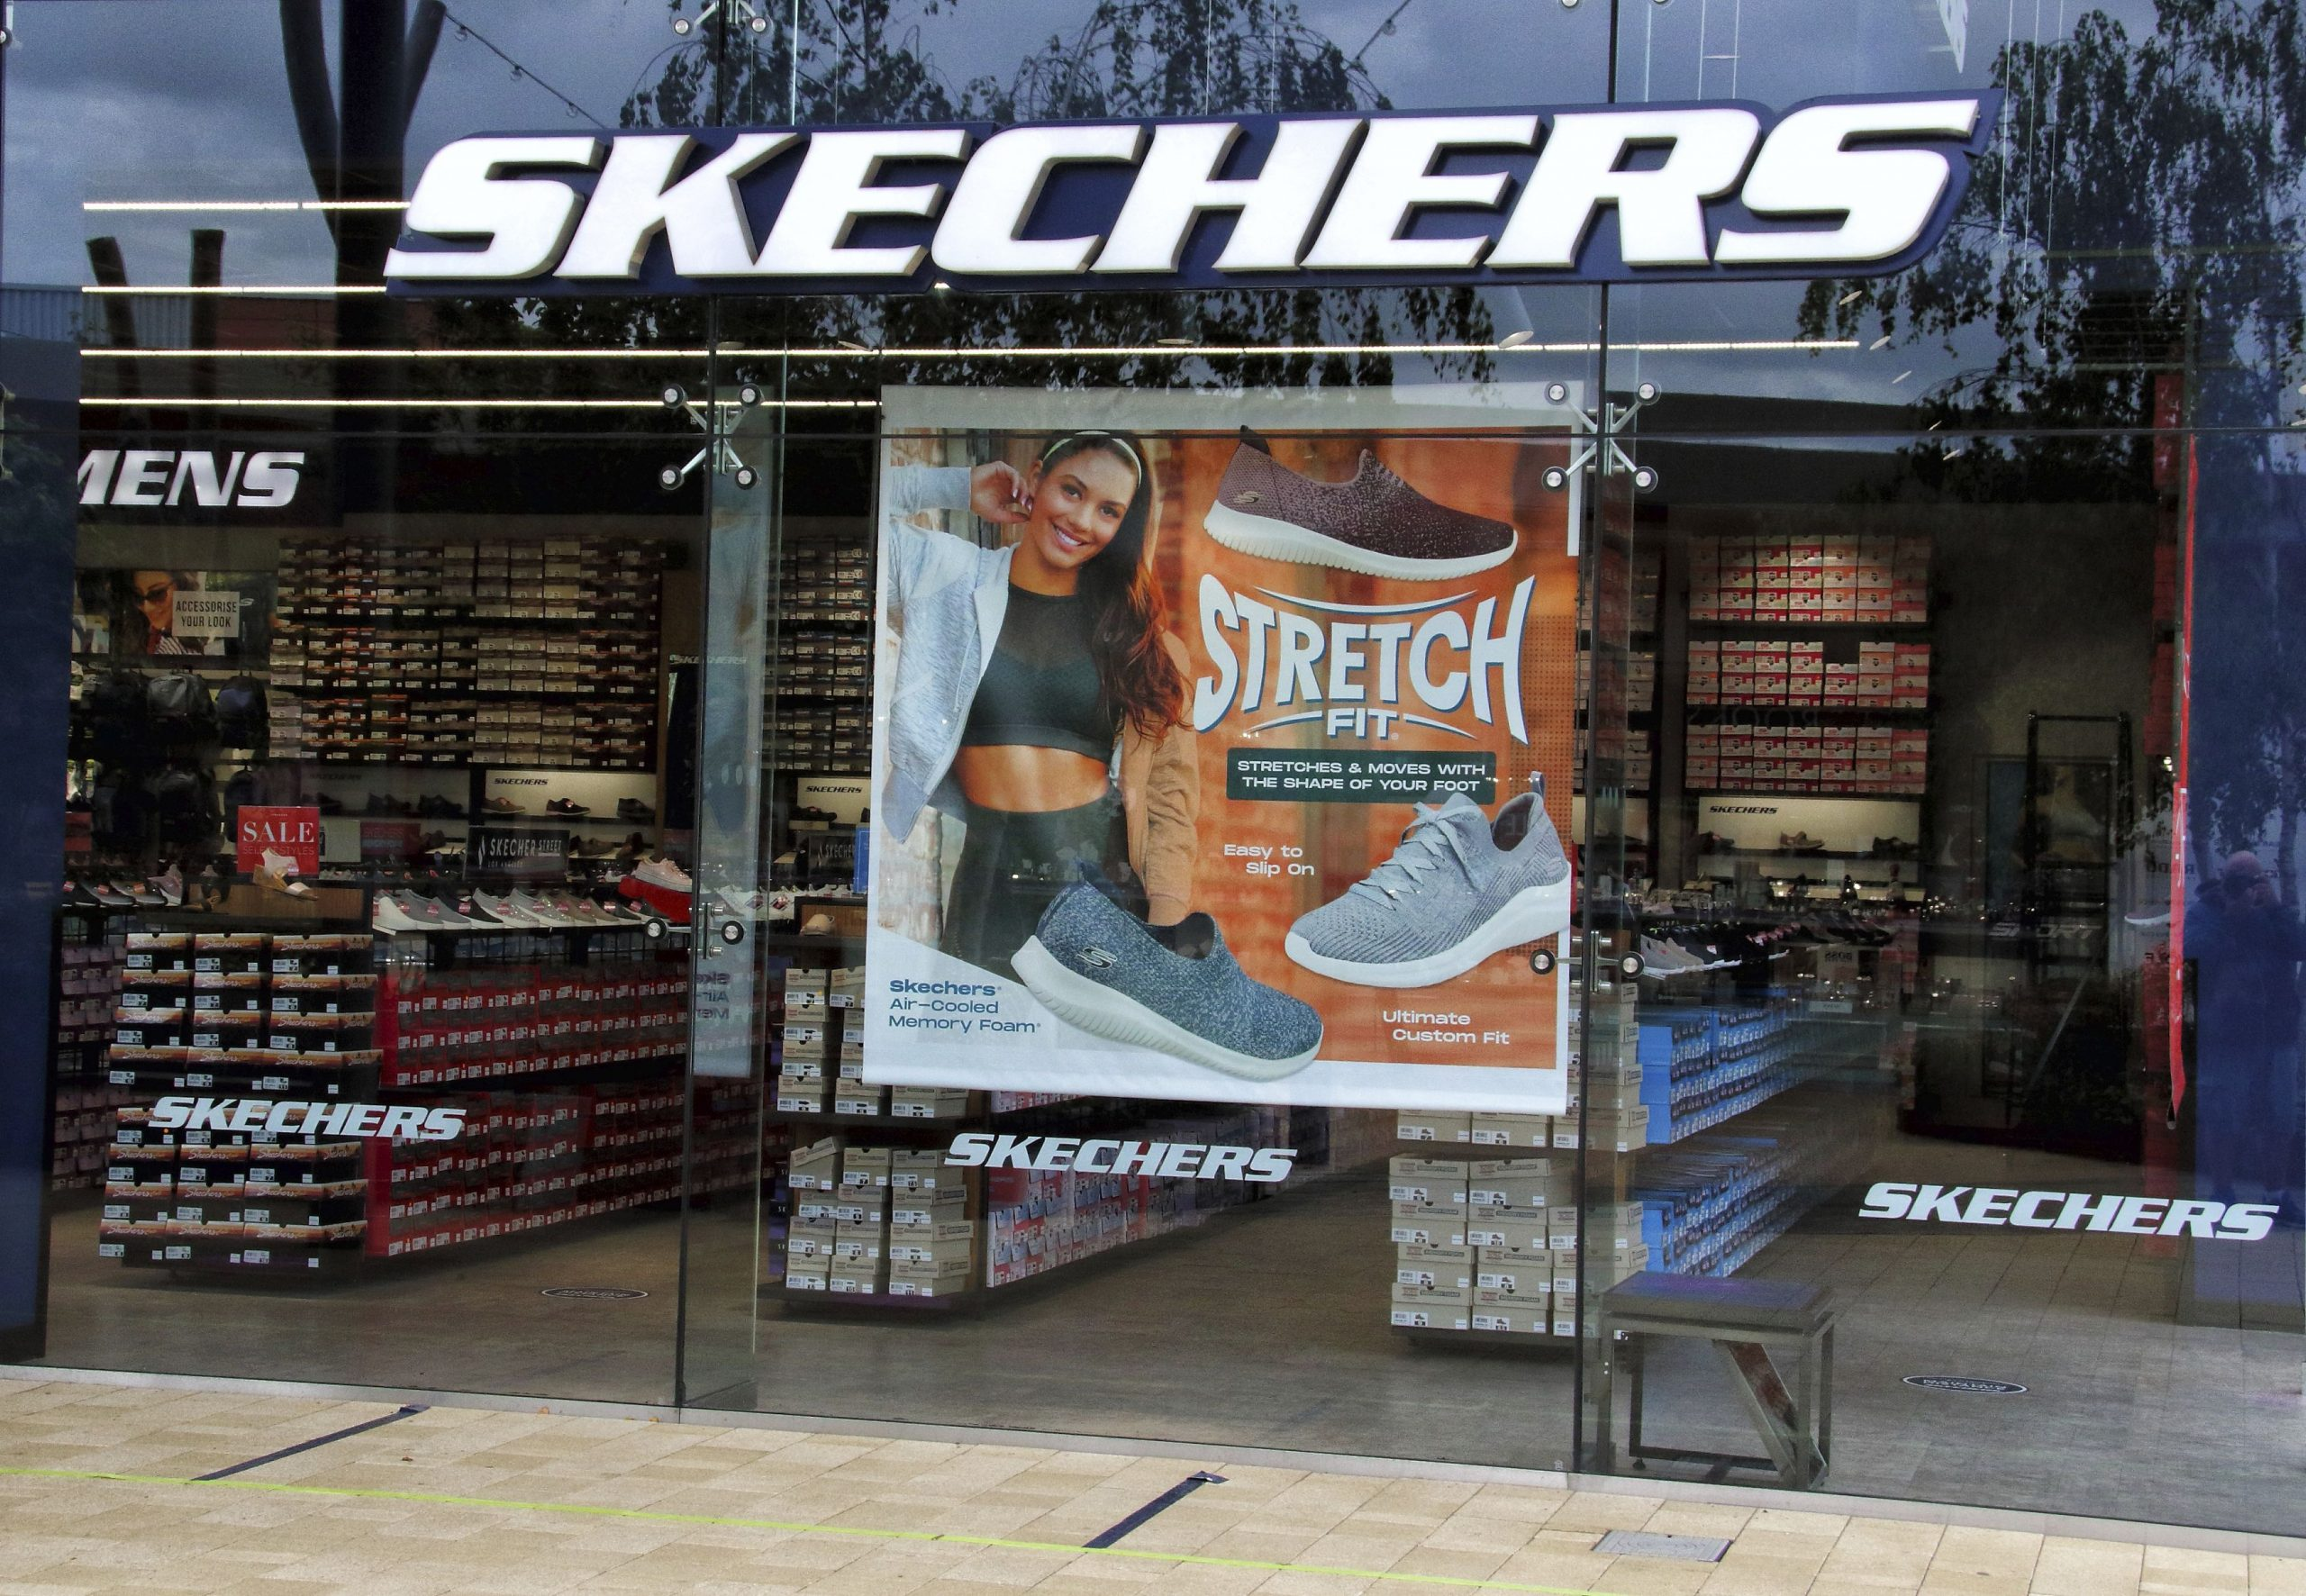 Despite drop in second quarter sales, Sketchers shows early signs of recovery